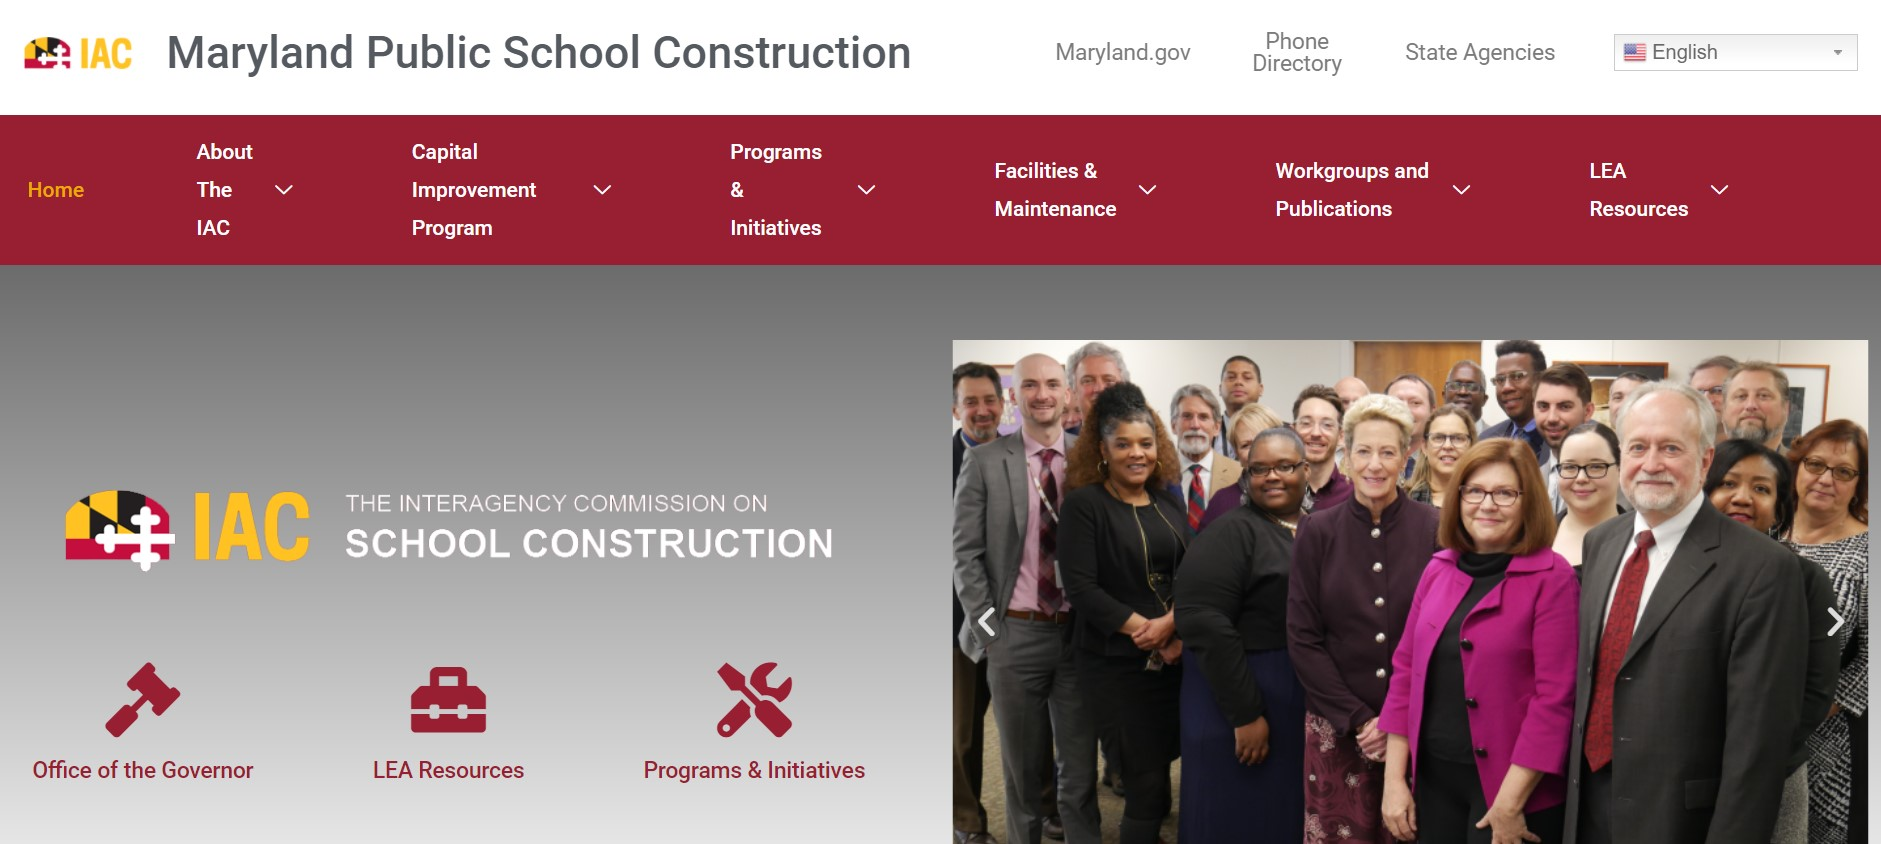 Interagency Commission on School Construction Launches New Website